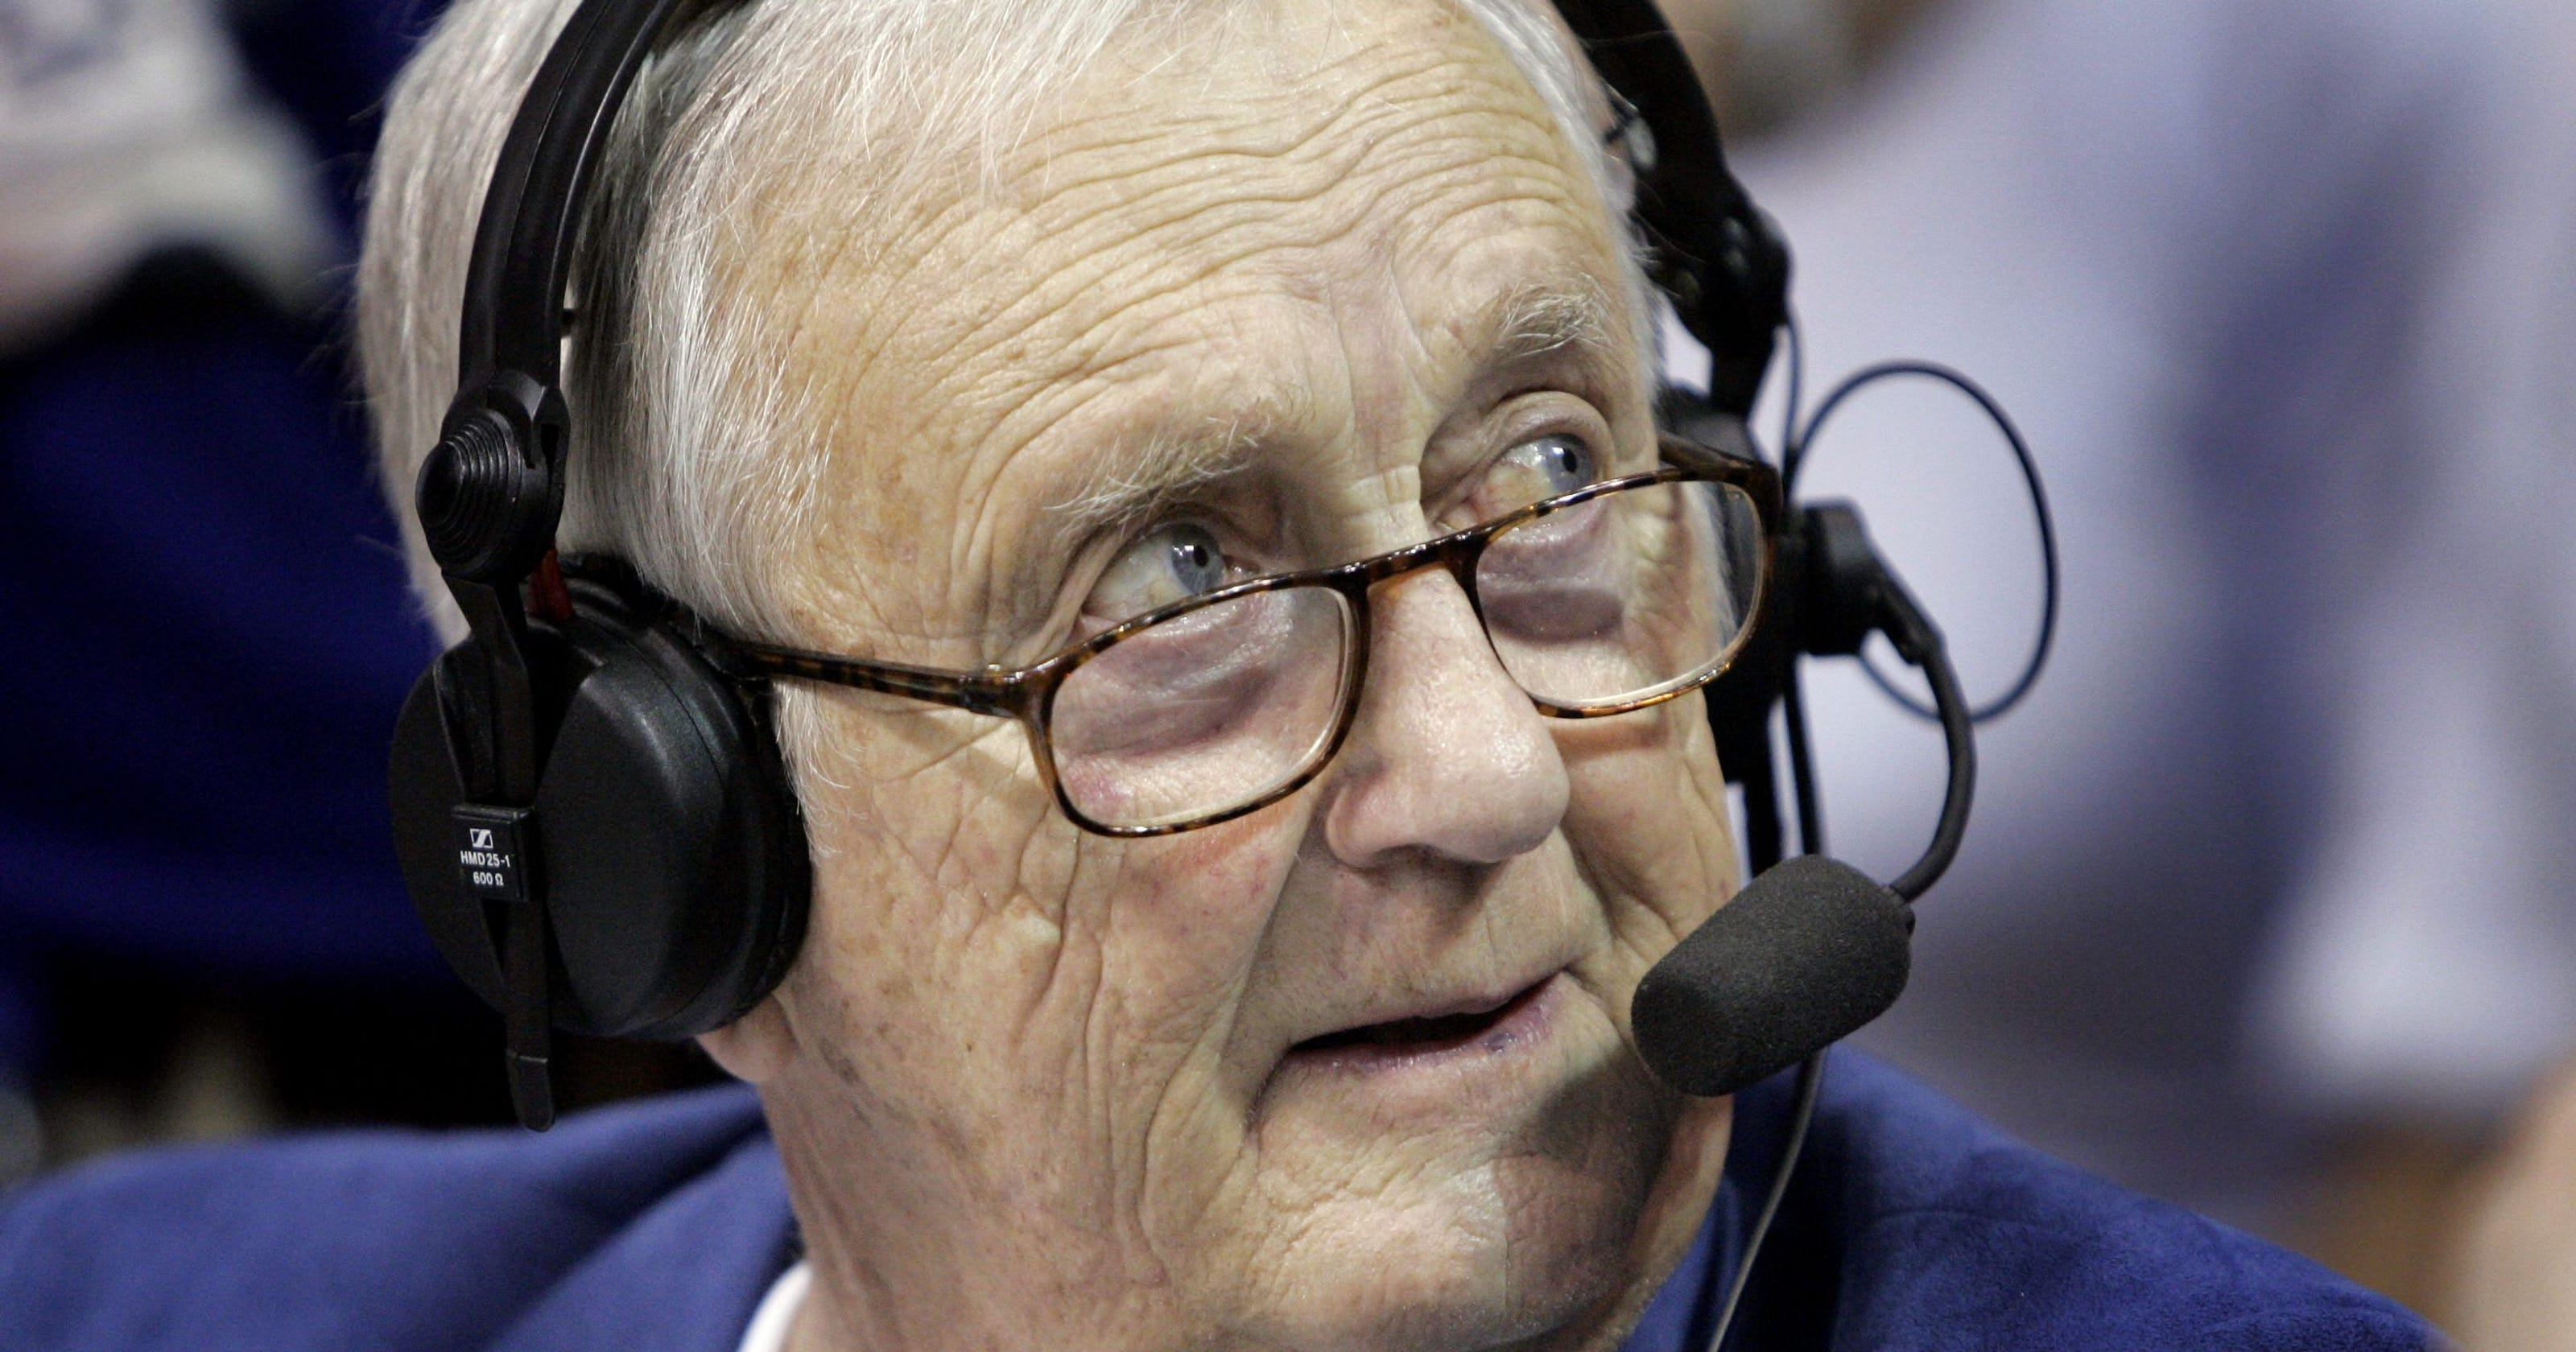 Max behind the mic. Max Falkenstien spent decades broadcasting KU football and basketball games. (Photo by KU Athlectics)